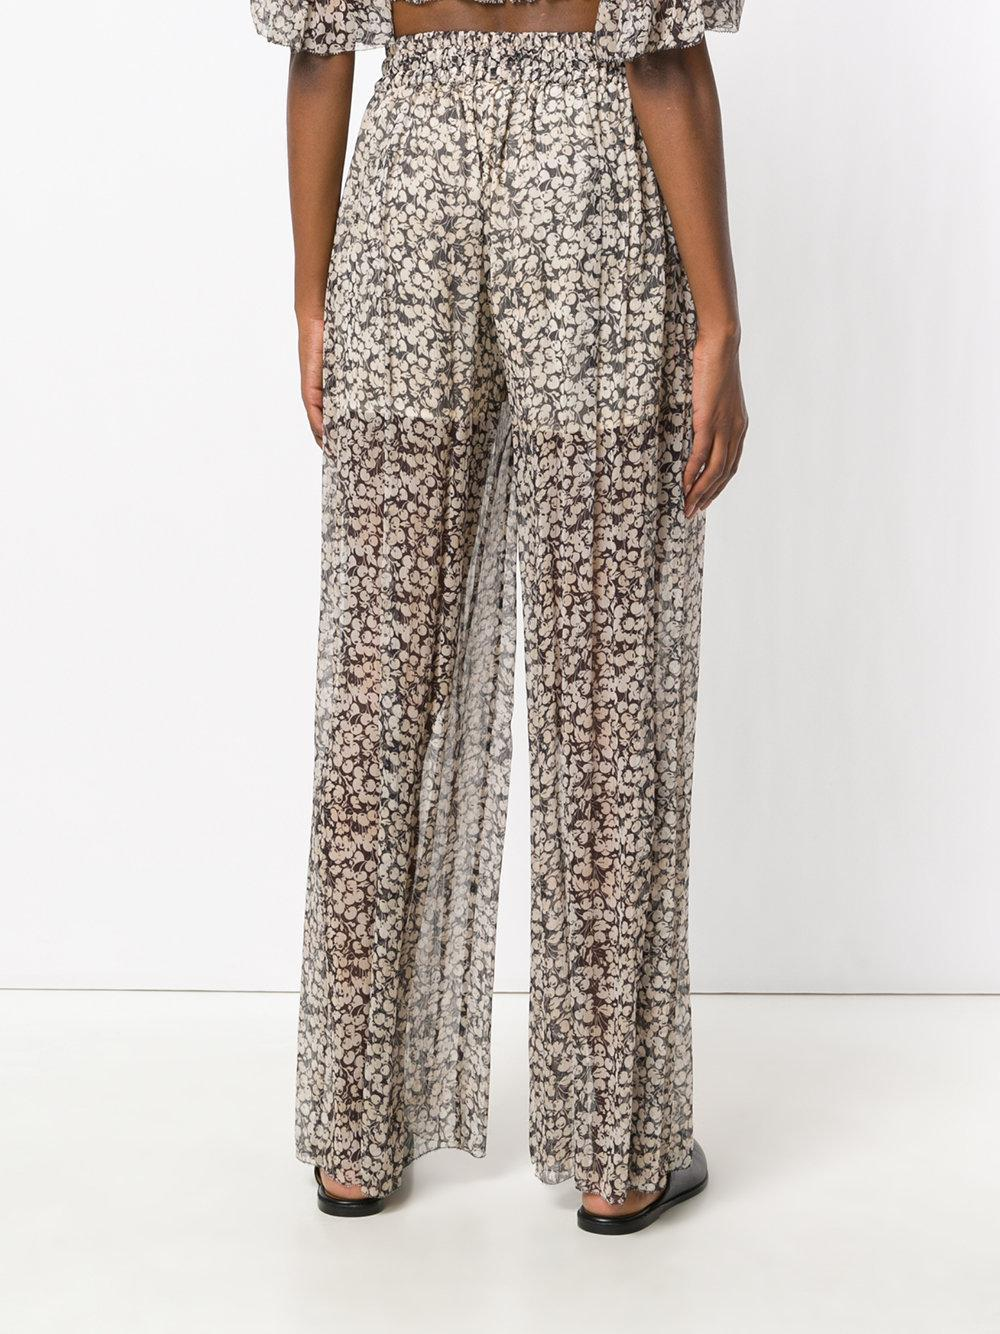 sheer floral trousers - Nude & Neutrals Zimmermann Professional Sale Online Buy Cheap Get Authentic Pre Order For Sale How Much Buy Cheap 2018 New DuKXBz